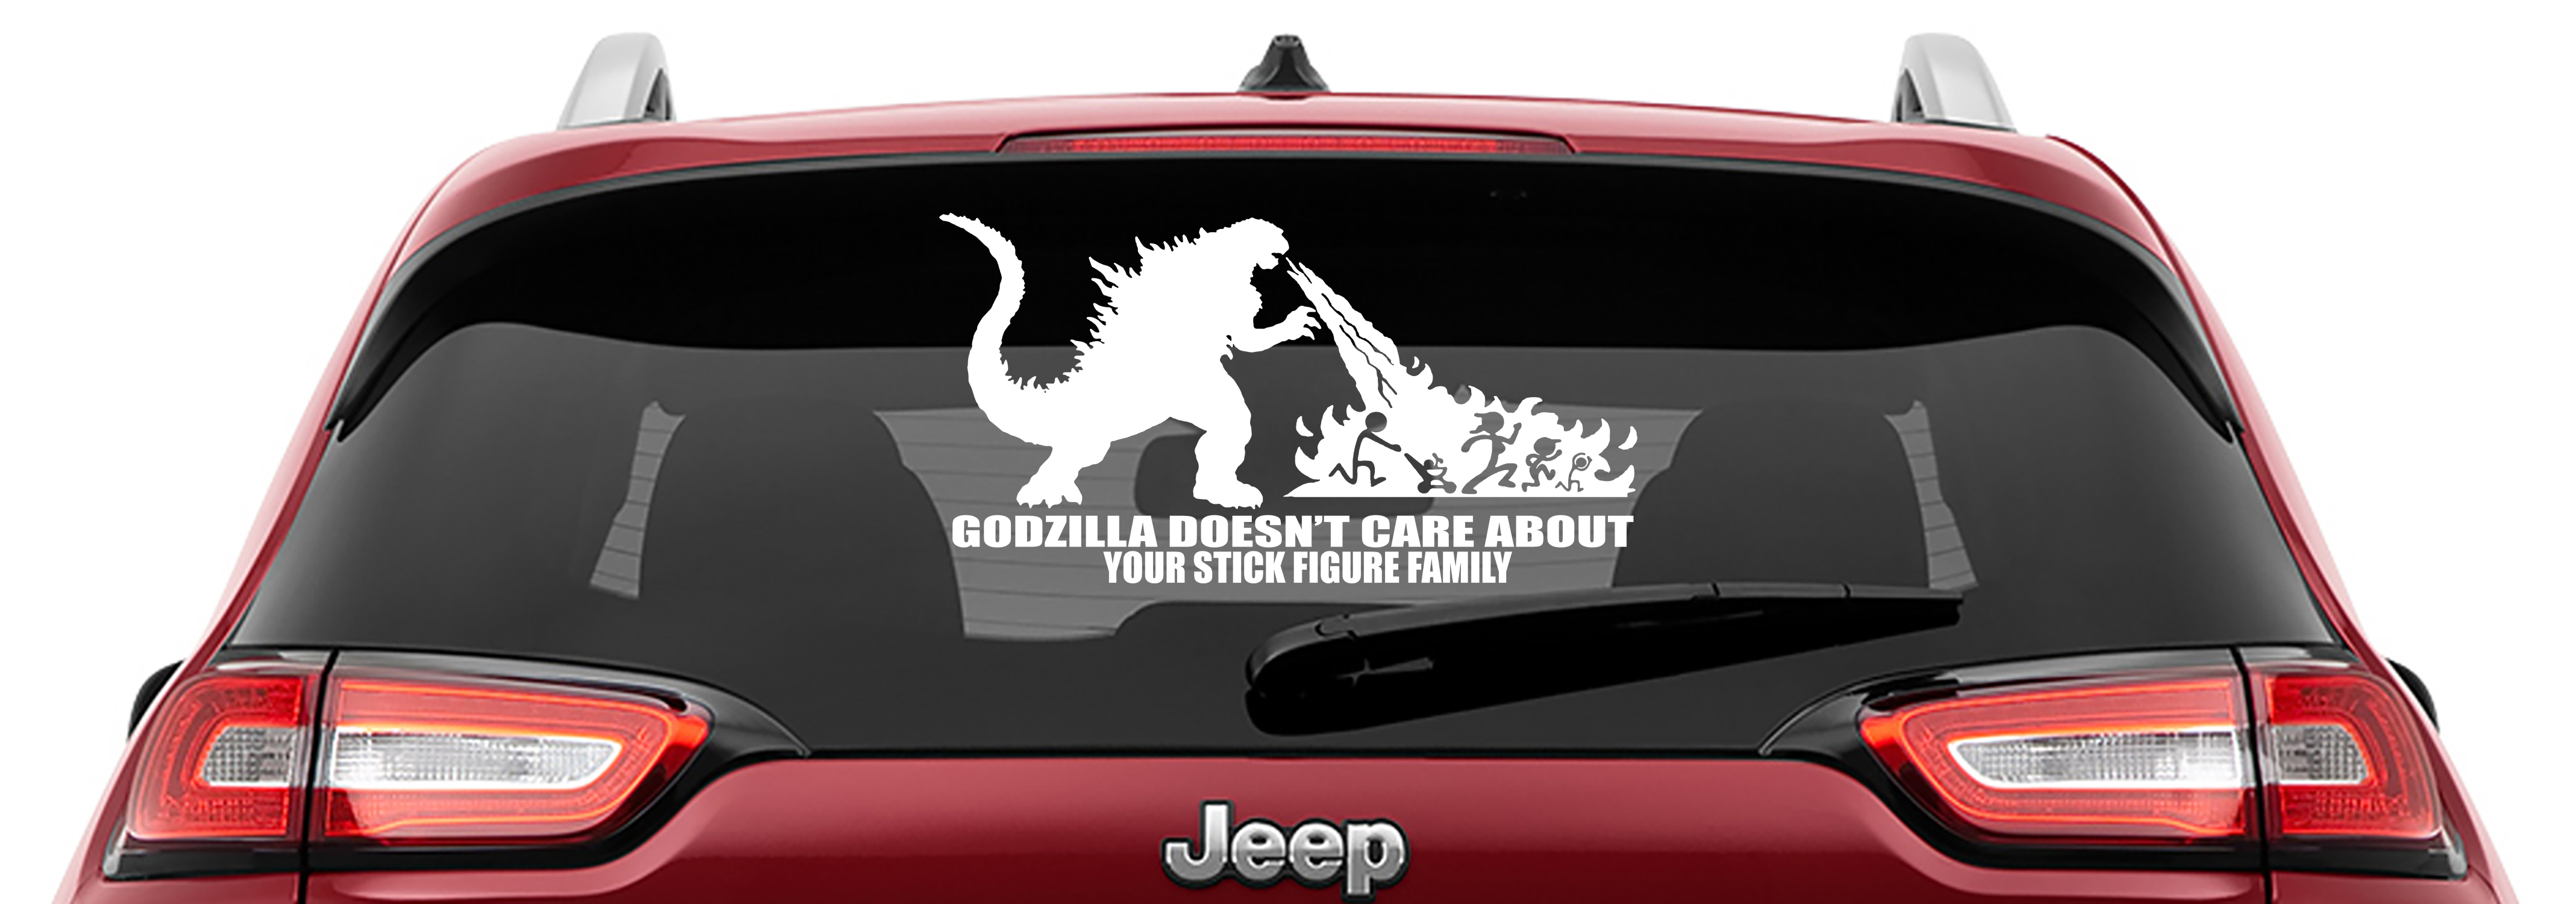 Godzilla Doesn't Care Your Stick Figure Family Vinyl Decal